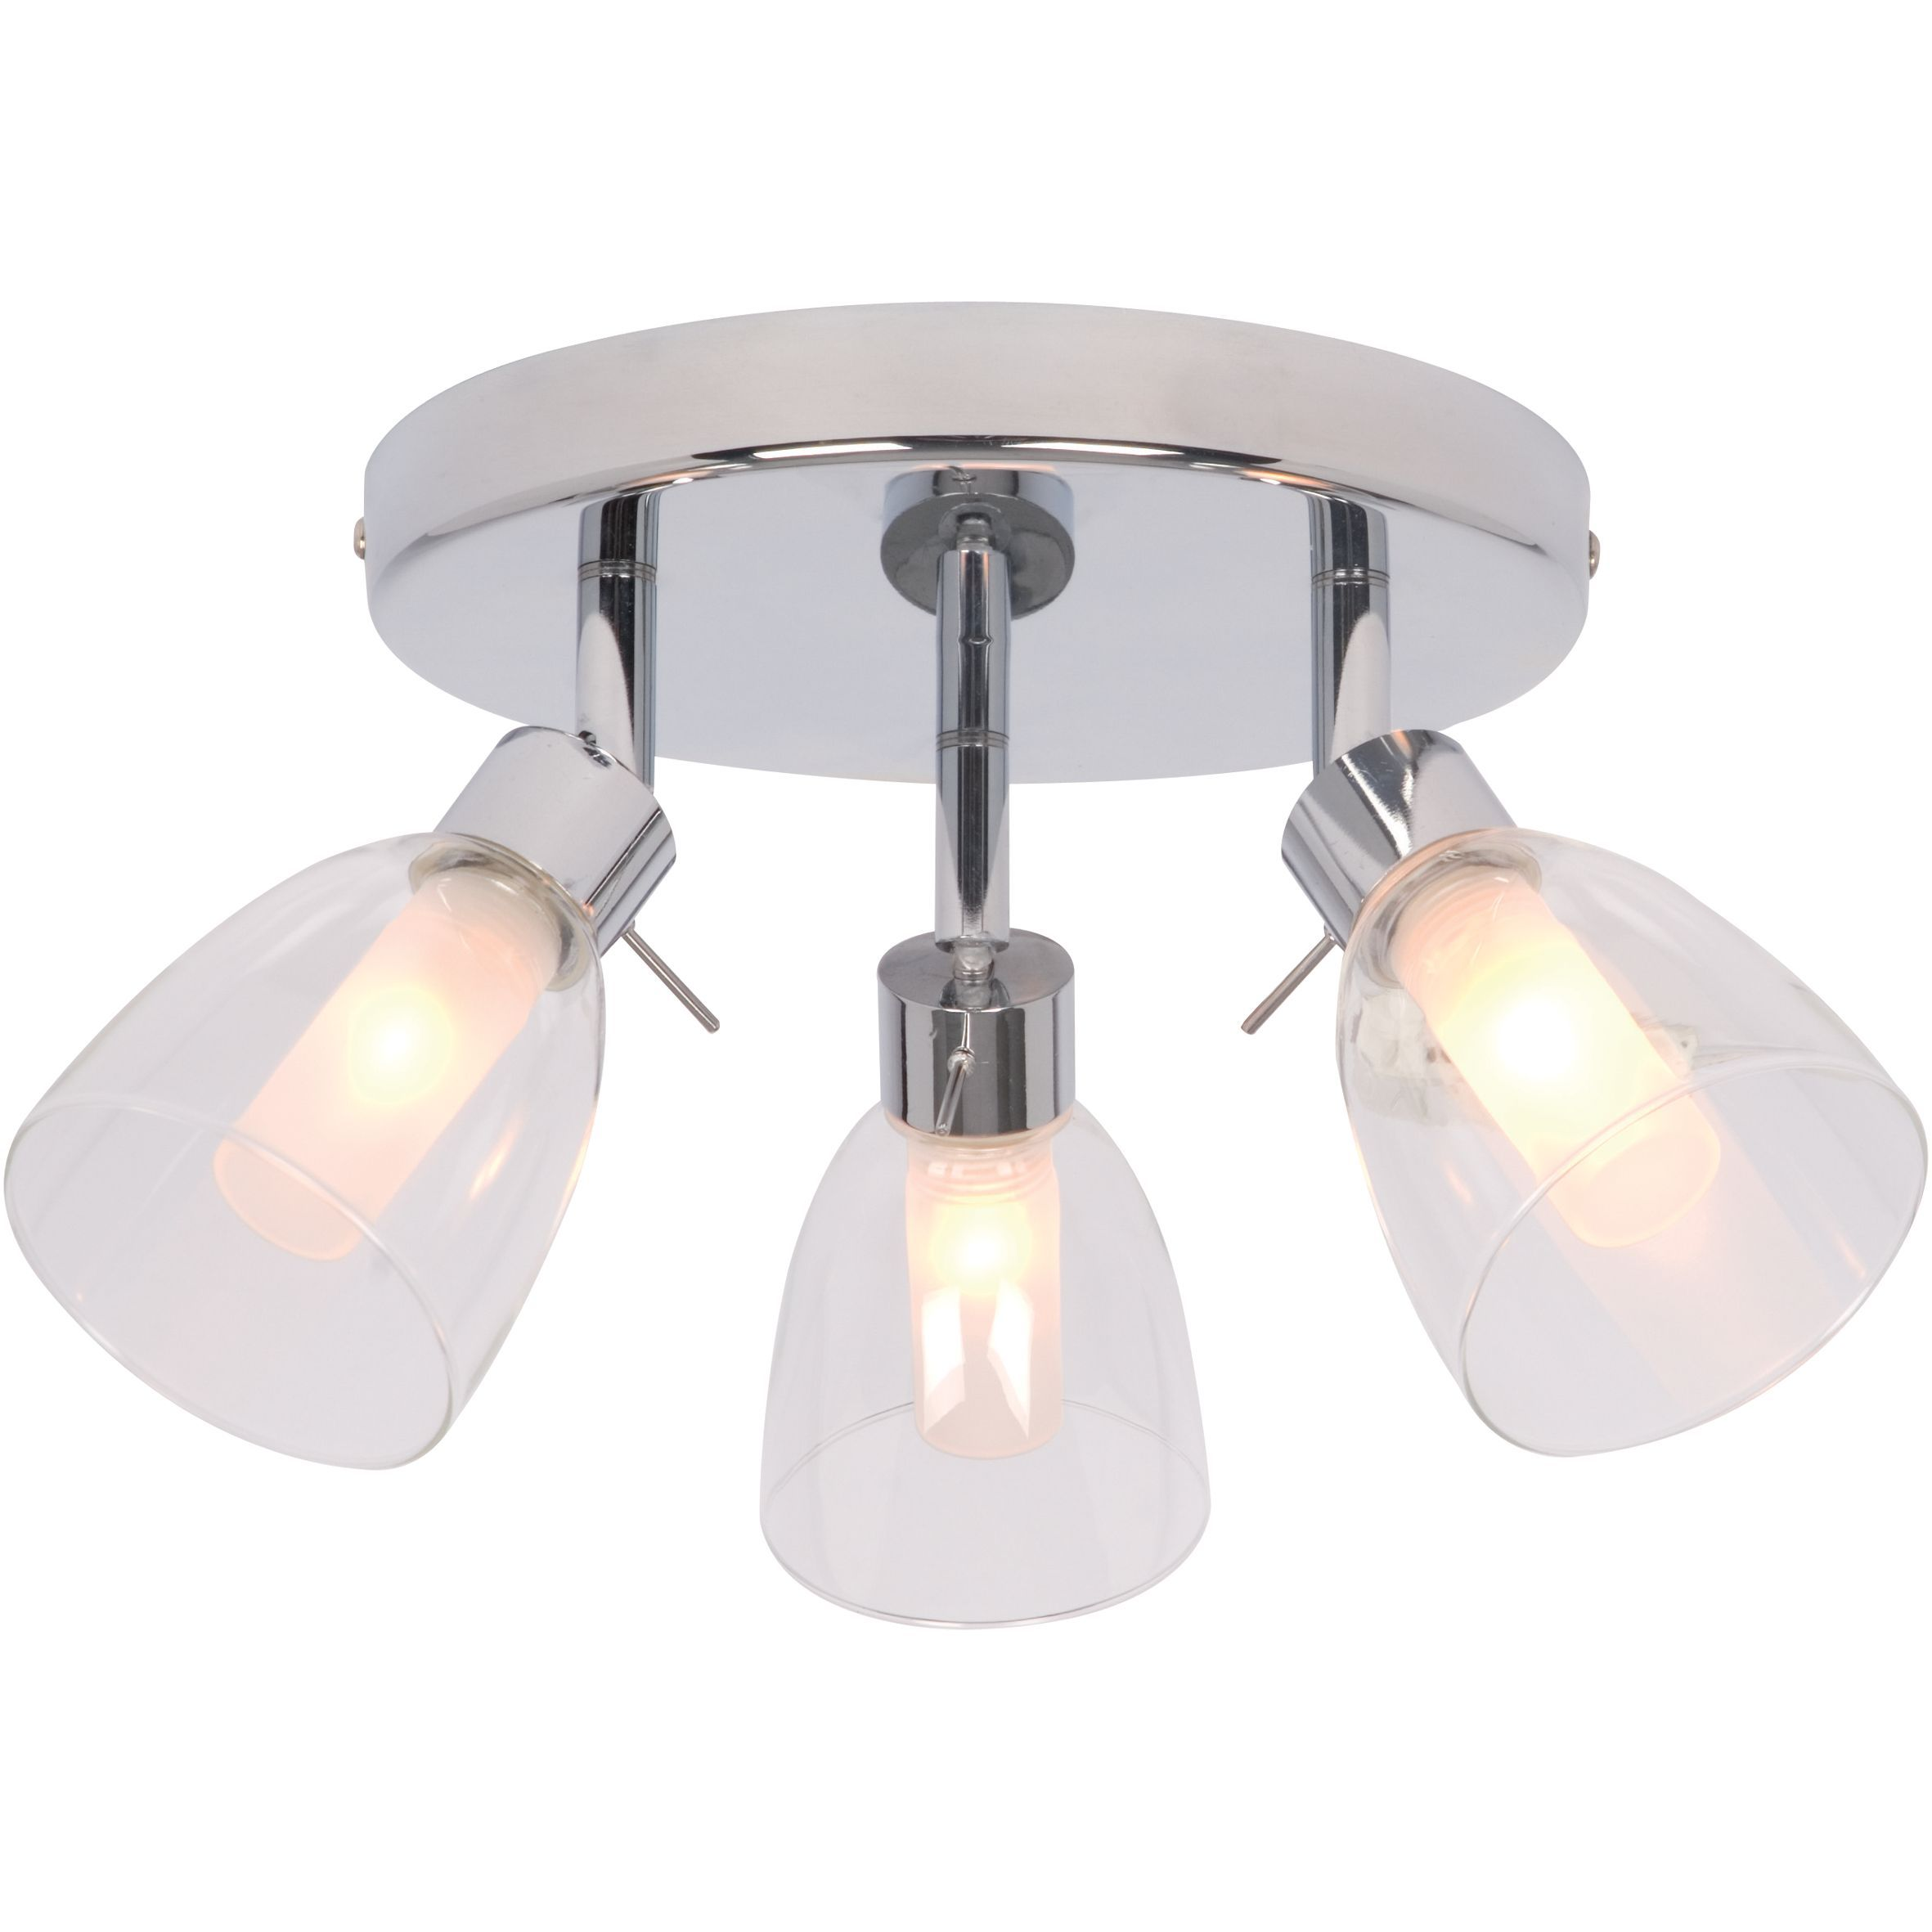 Geni Chrome-Plated 3 Lamp Bathroom Spotlight | Departments | DIY at B&Q